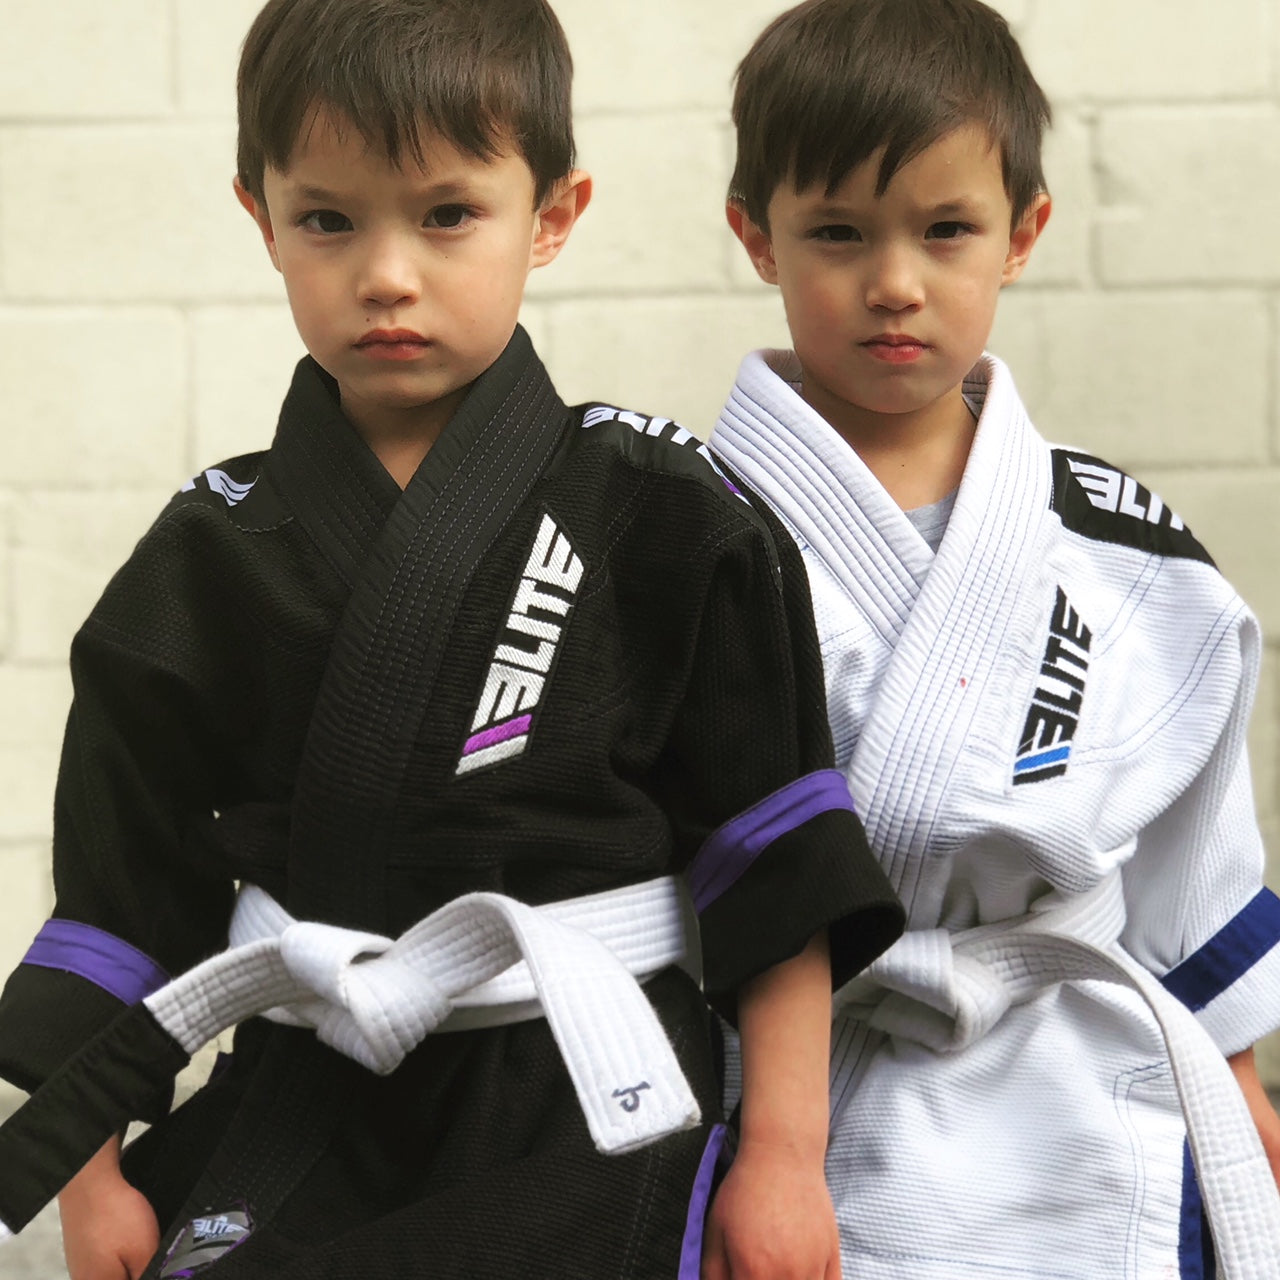 Elite Sports Team Elite Bjj Fighter Oliver Ho & Jonathan Ho Image1